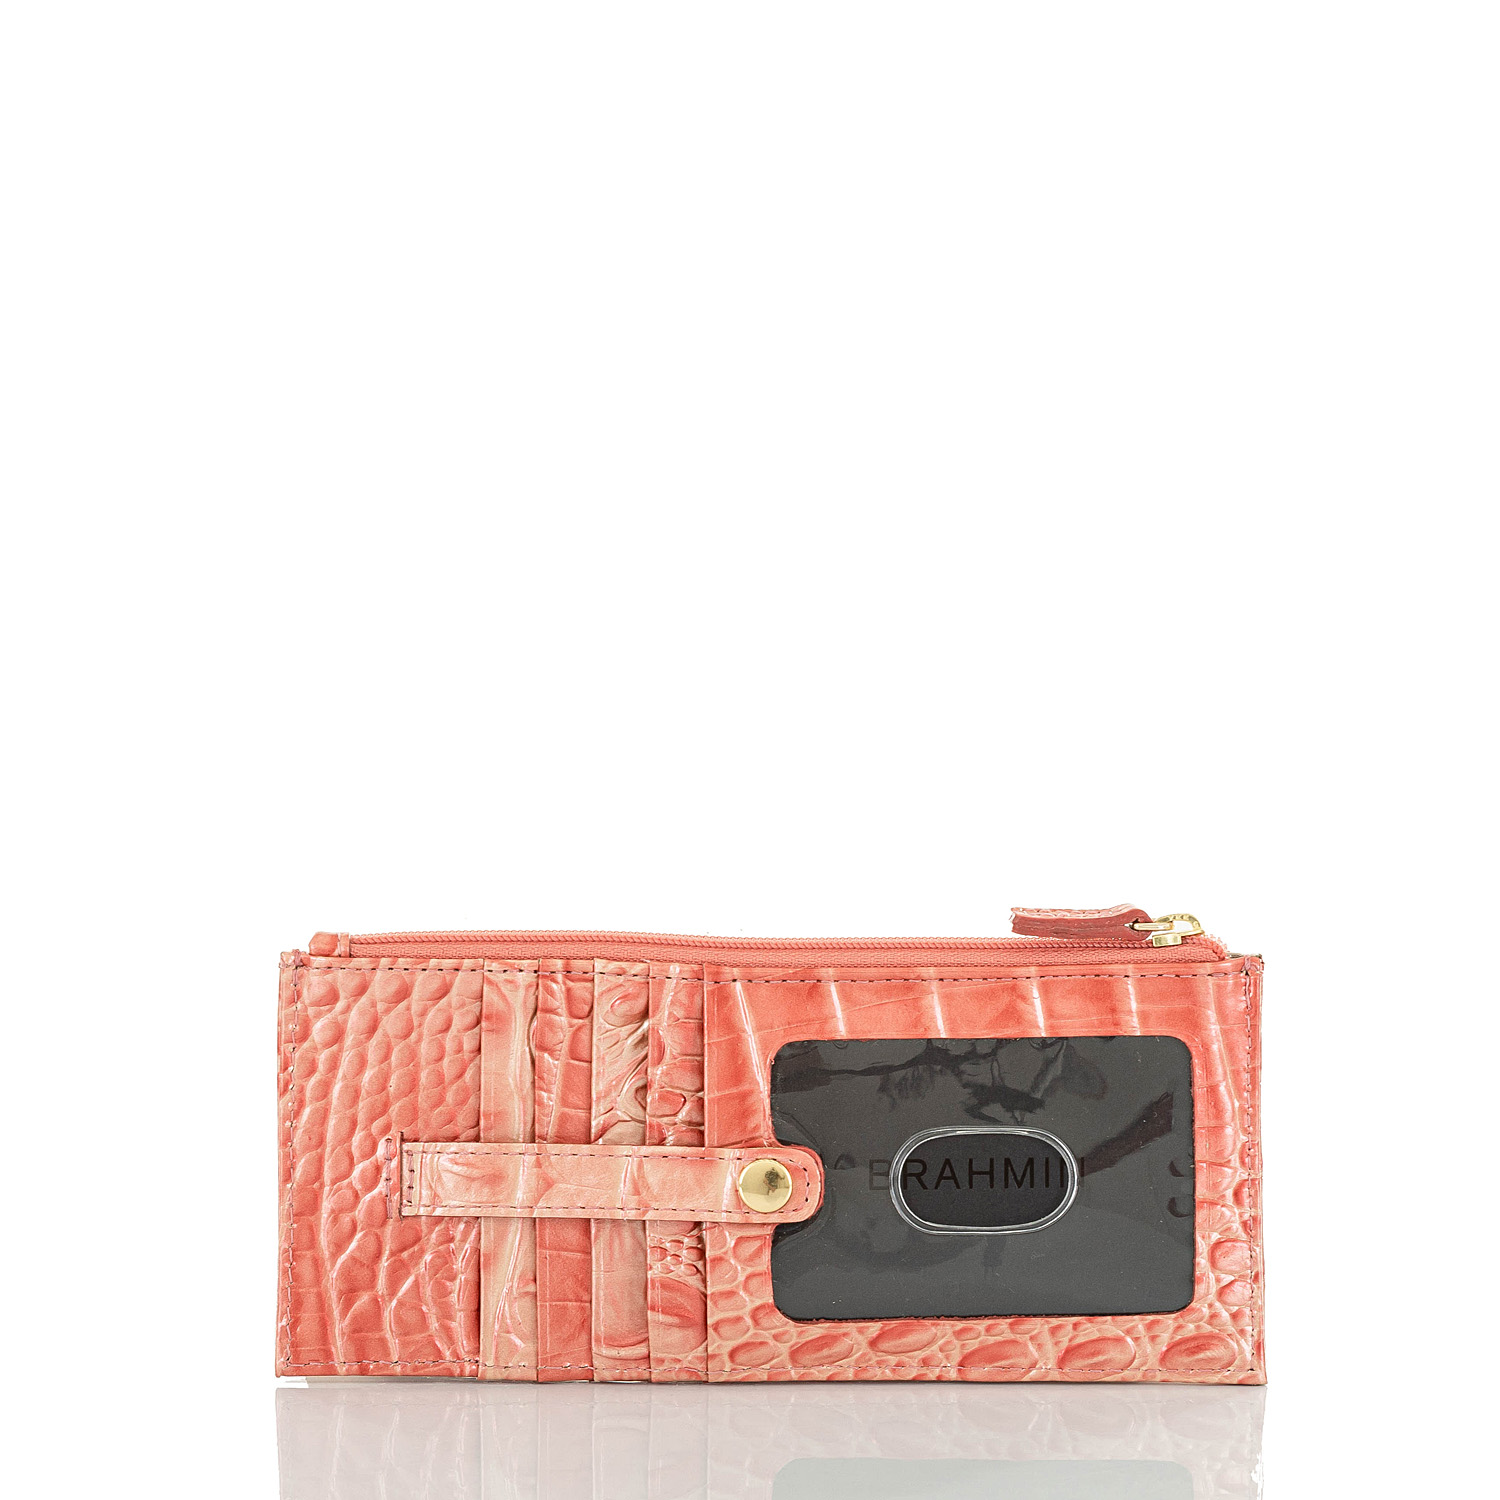 Credit Card Wallet Bellini Melbourne